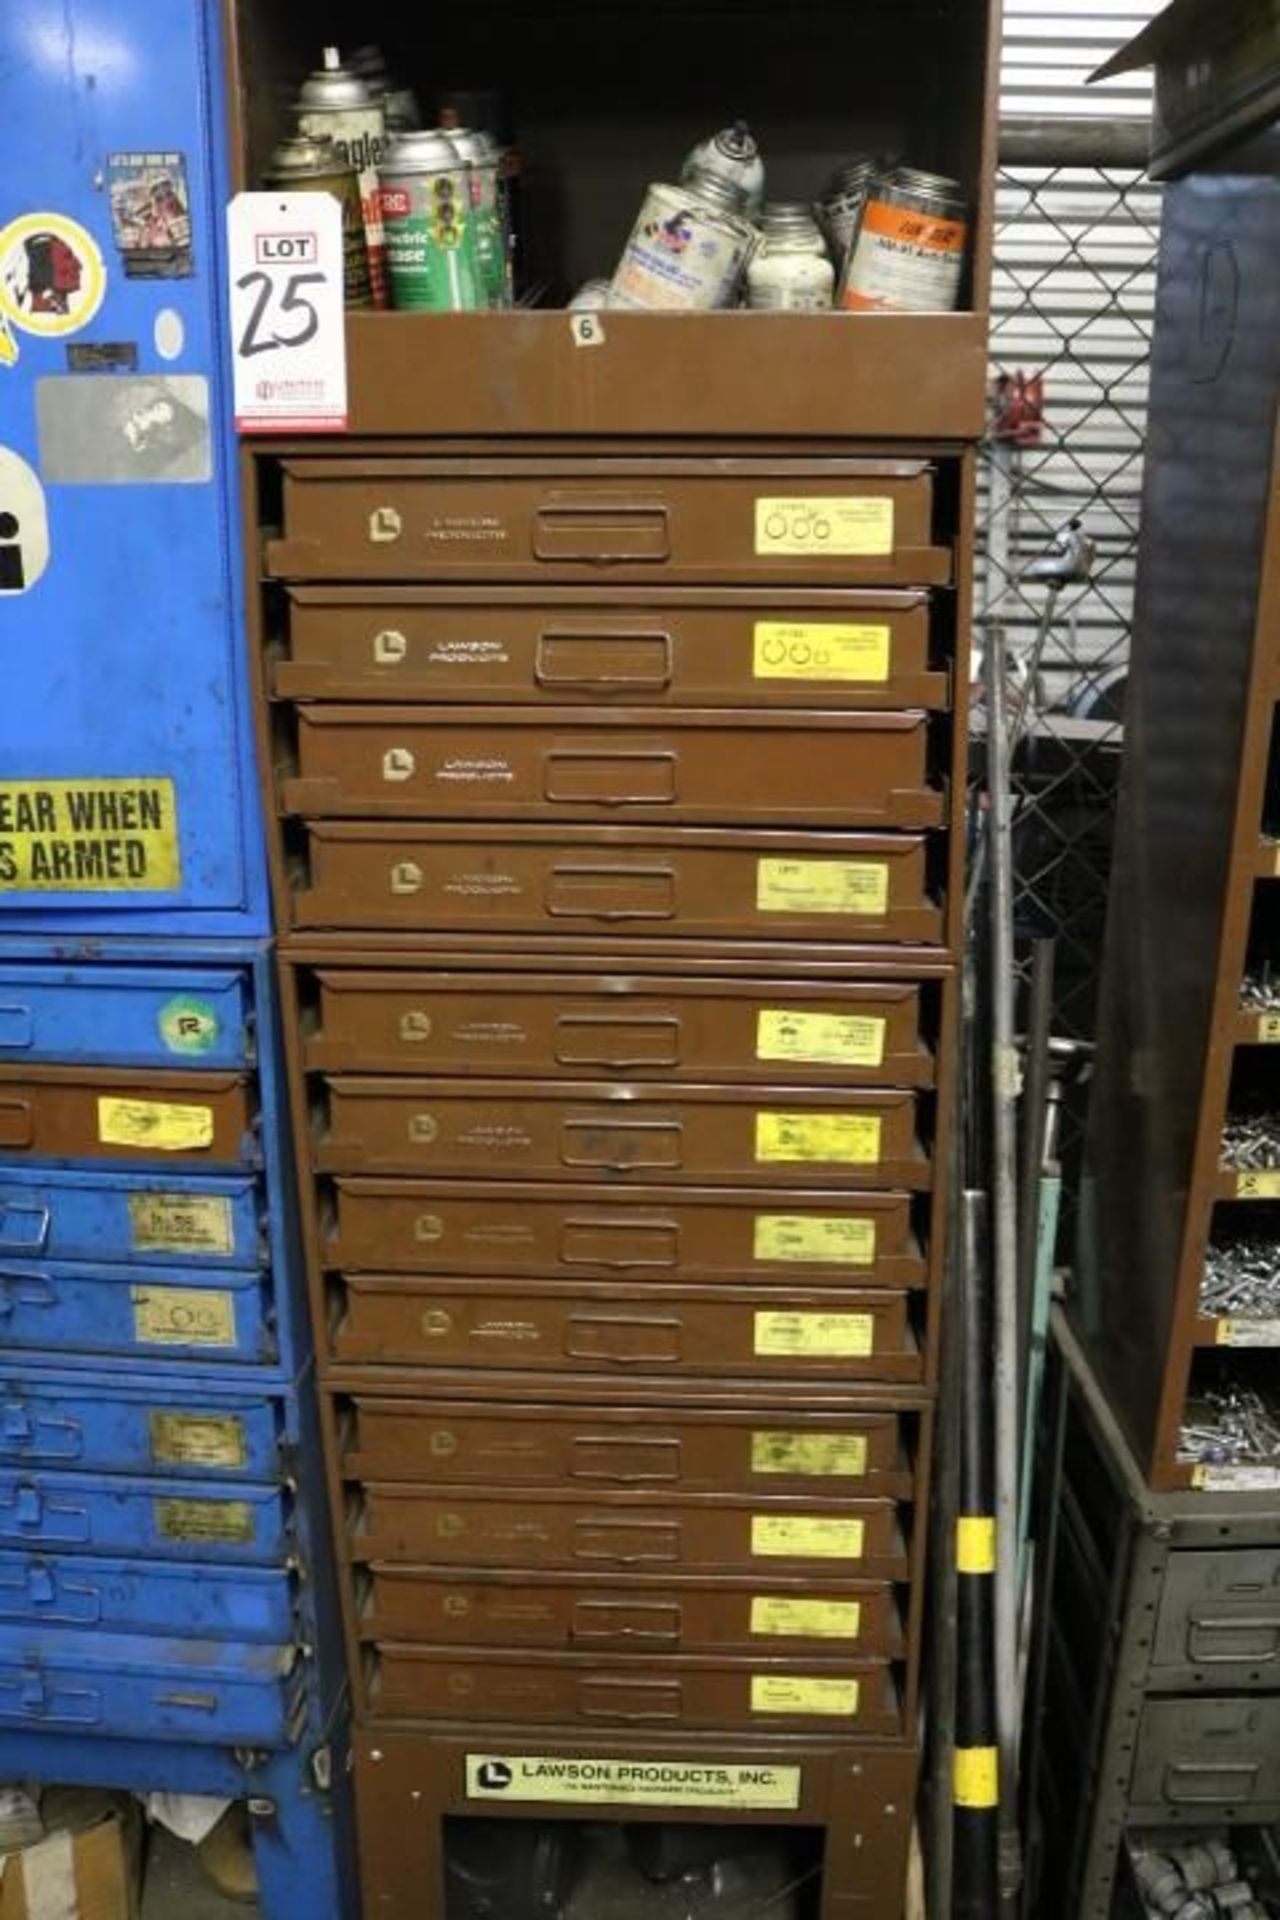 Lot 25 - HARDWARE CABINET W/ (12) REMOVABLE DRAWERS CONTAINING RETAINING RINGS, COTTER PINS, LOCK NUTS, CAP